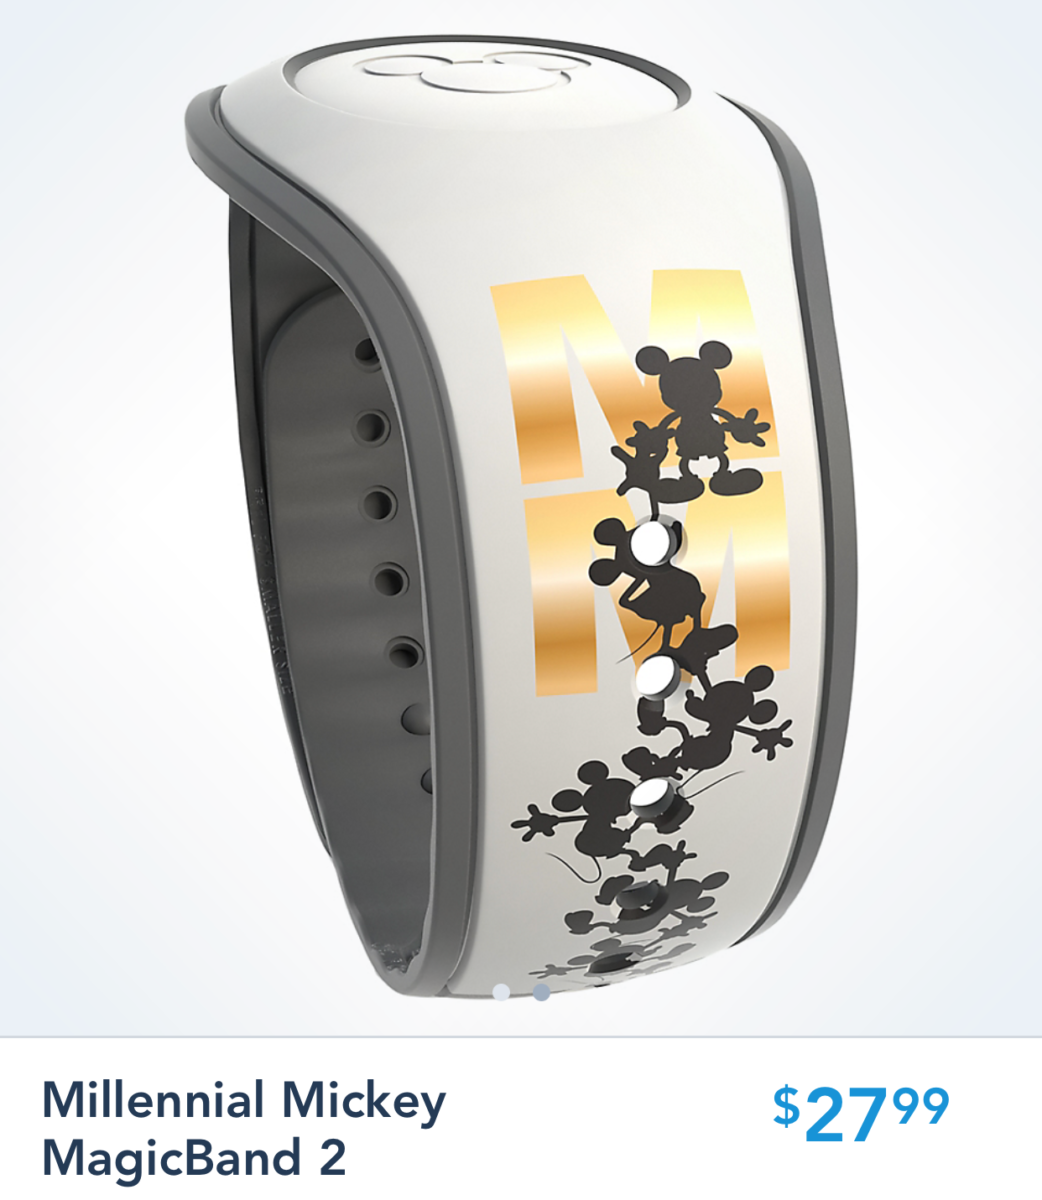 Fashionably Fun MagicBands Courtesy of ShopDisney! #DisneyStyle 5